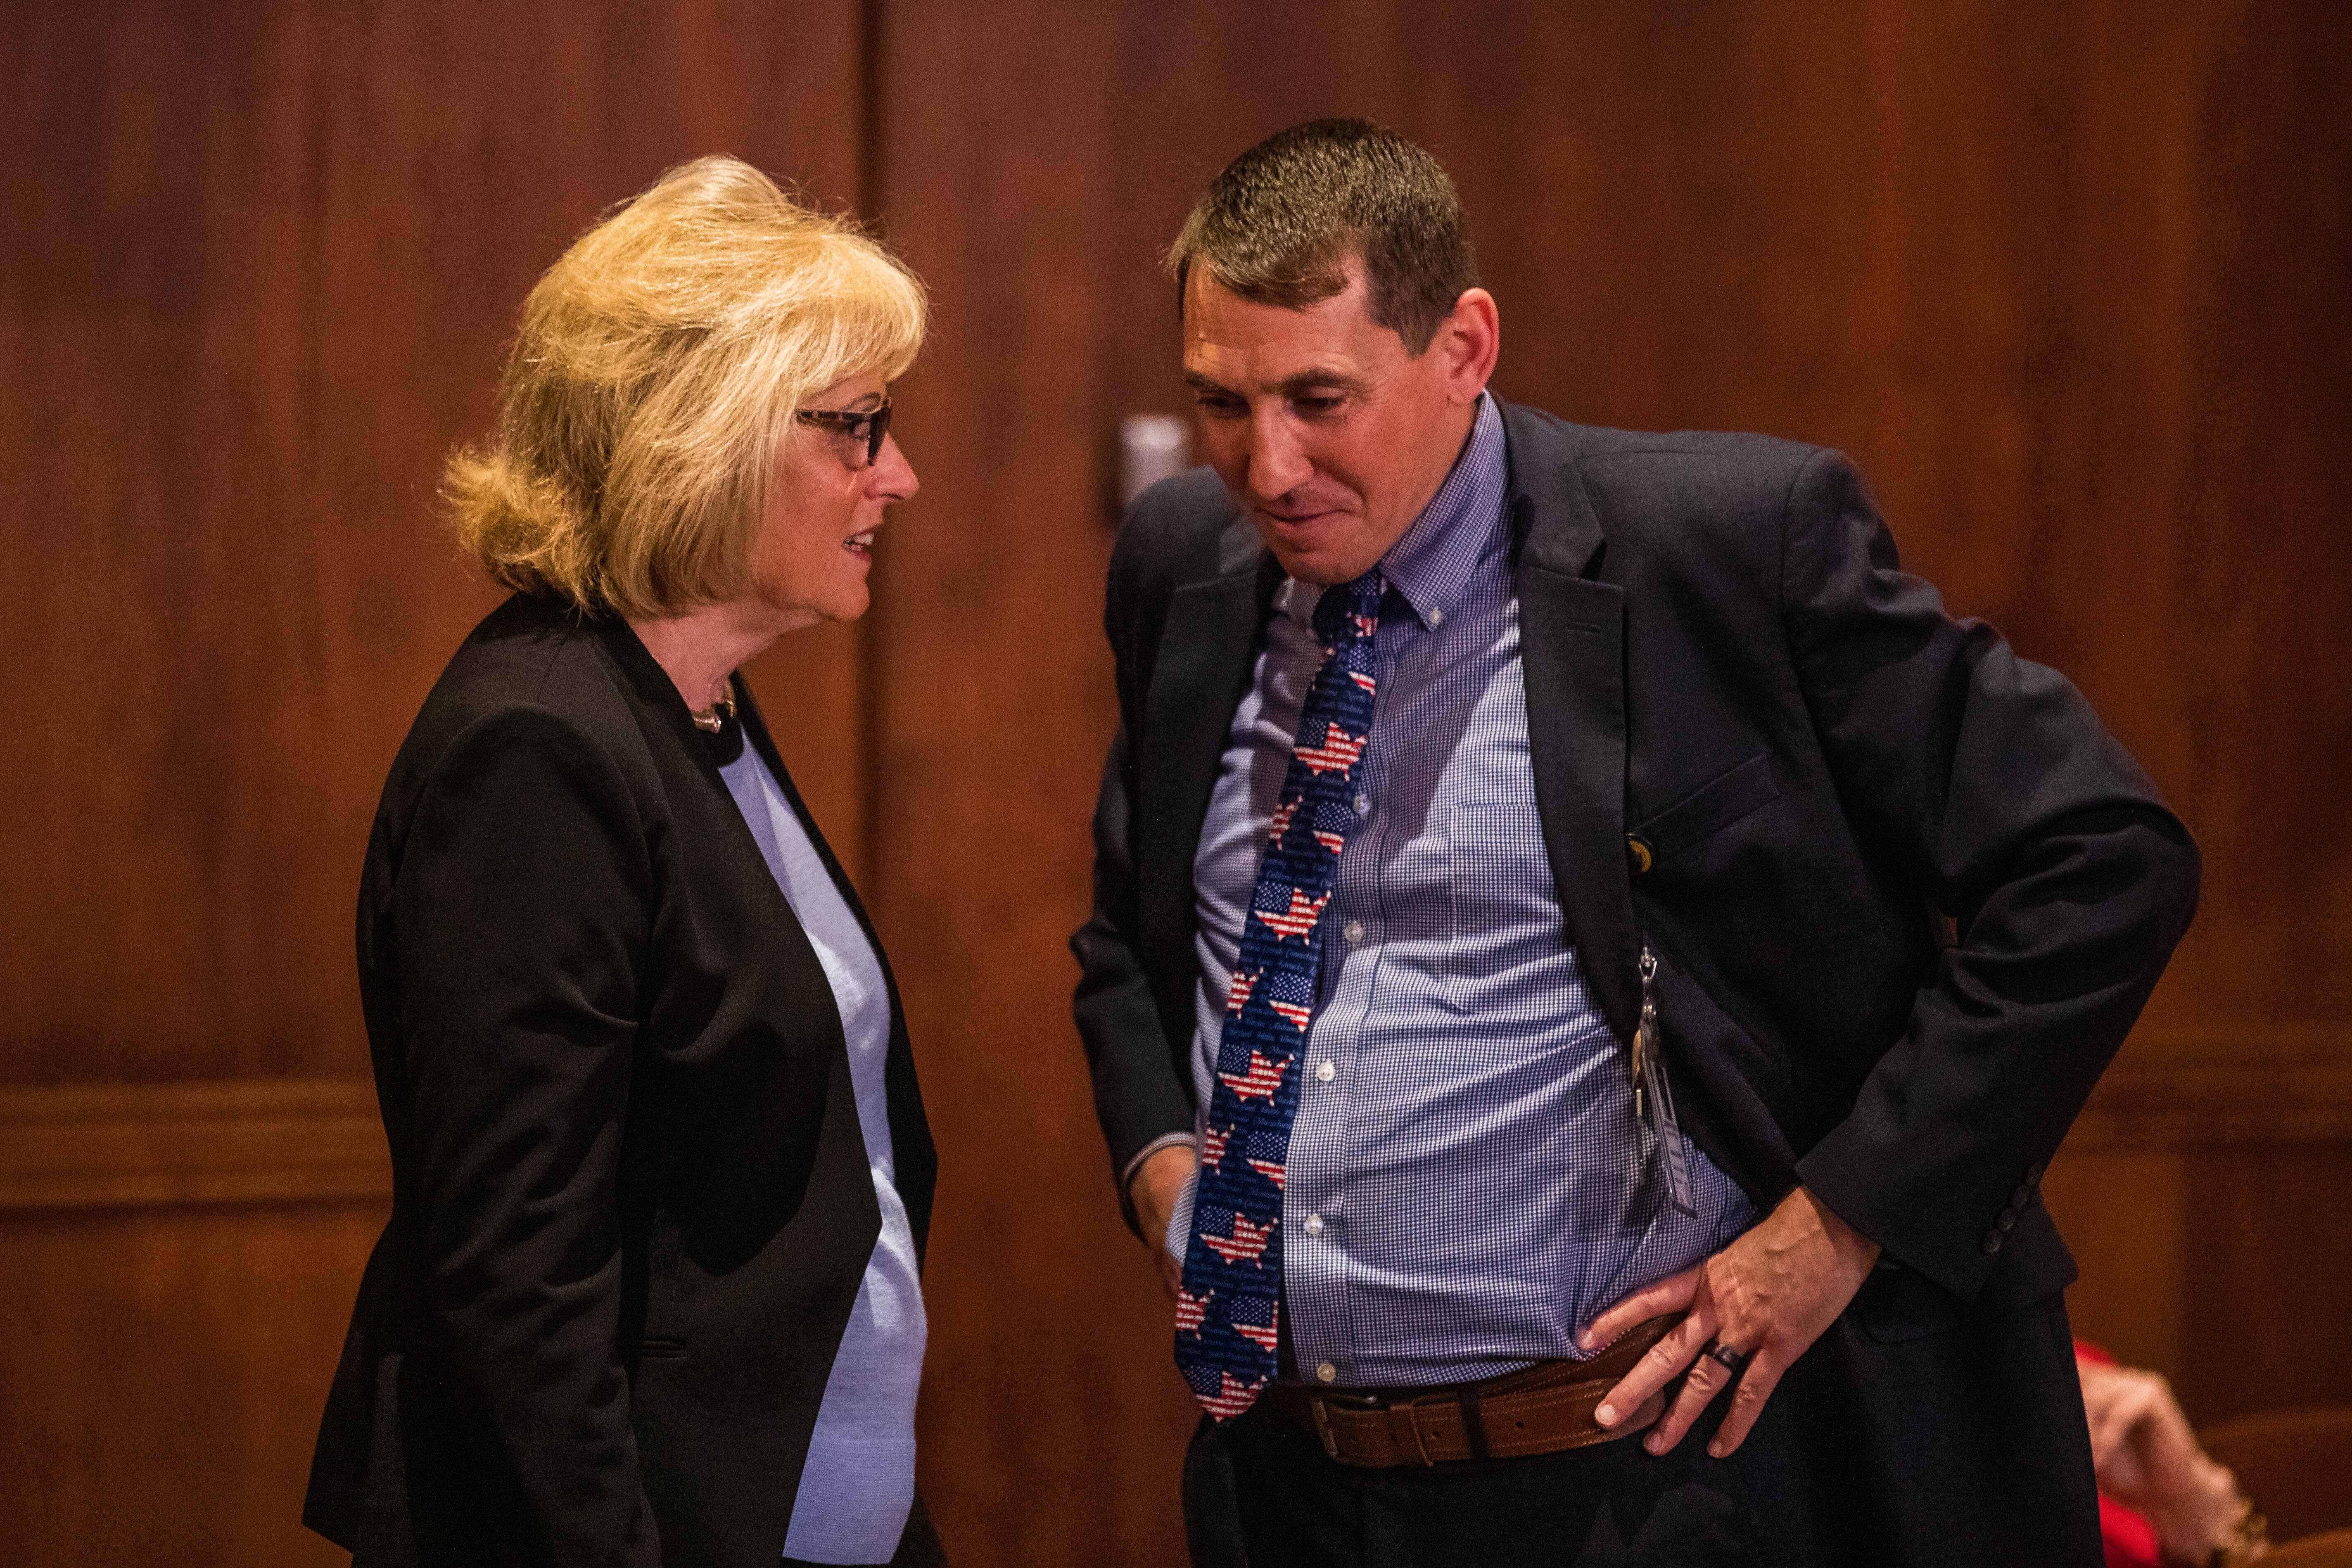 Cris Dush Chief of Staff Speaking With Abby Abildness Before Hearing